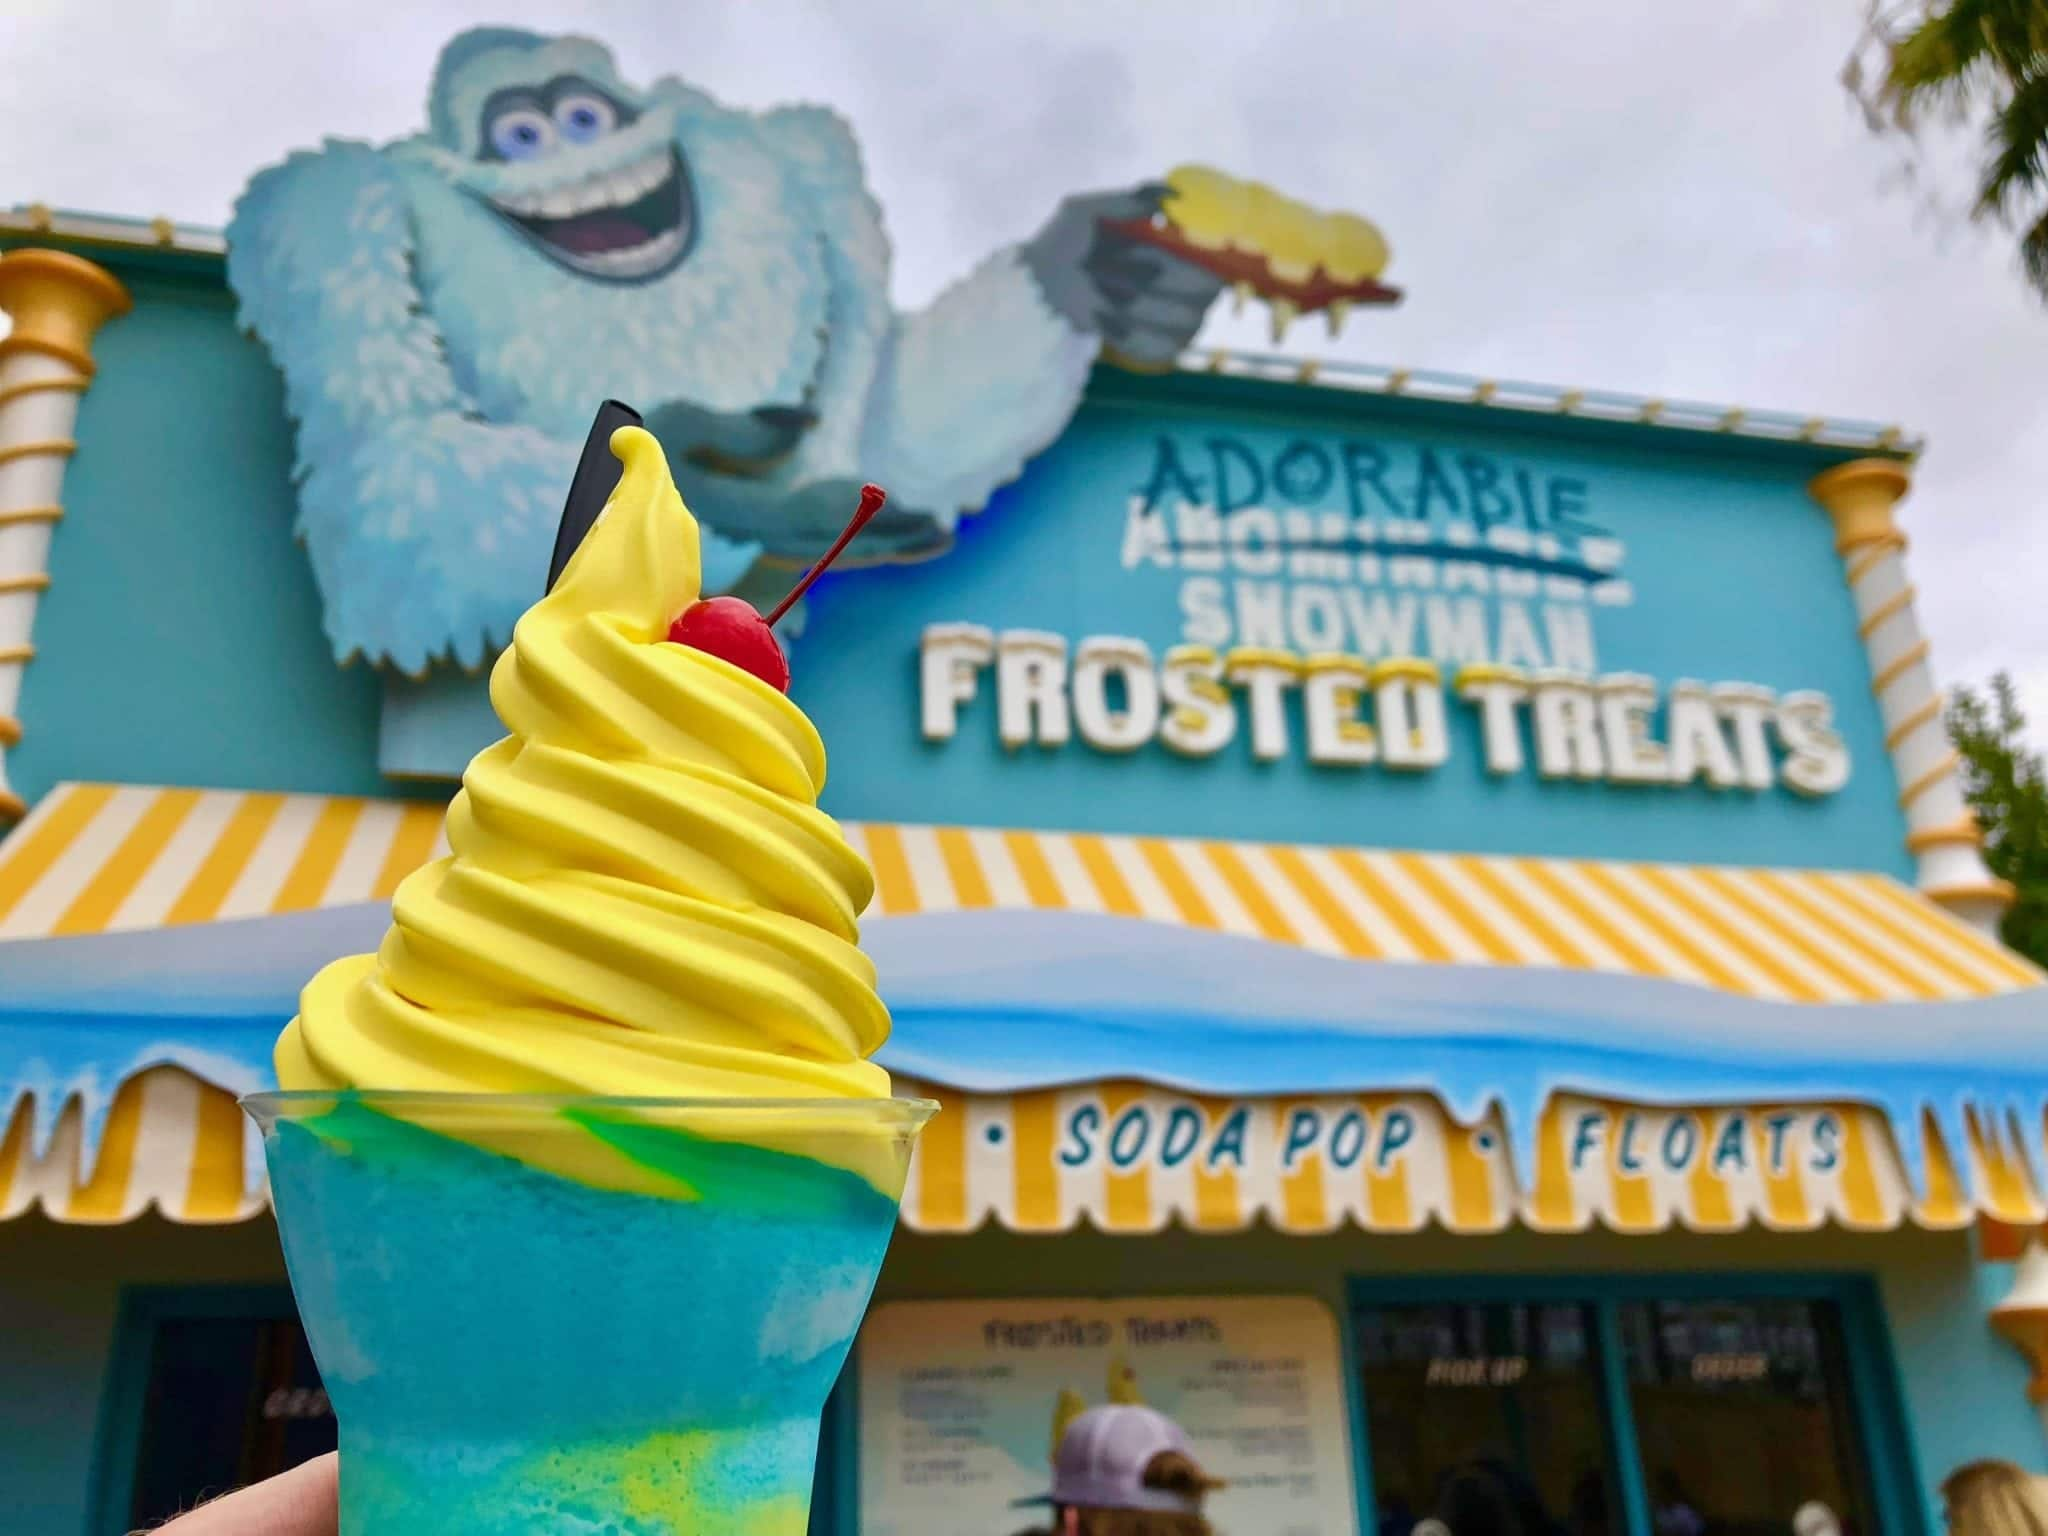 Adorable Snowman Frosted Treats Review